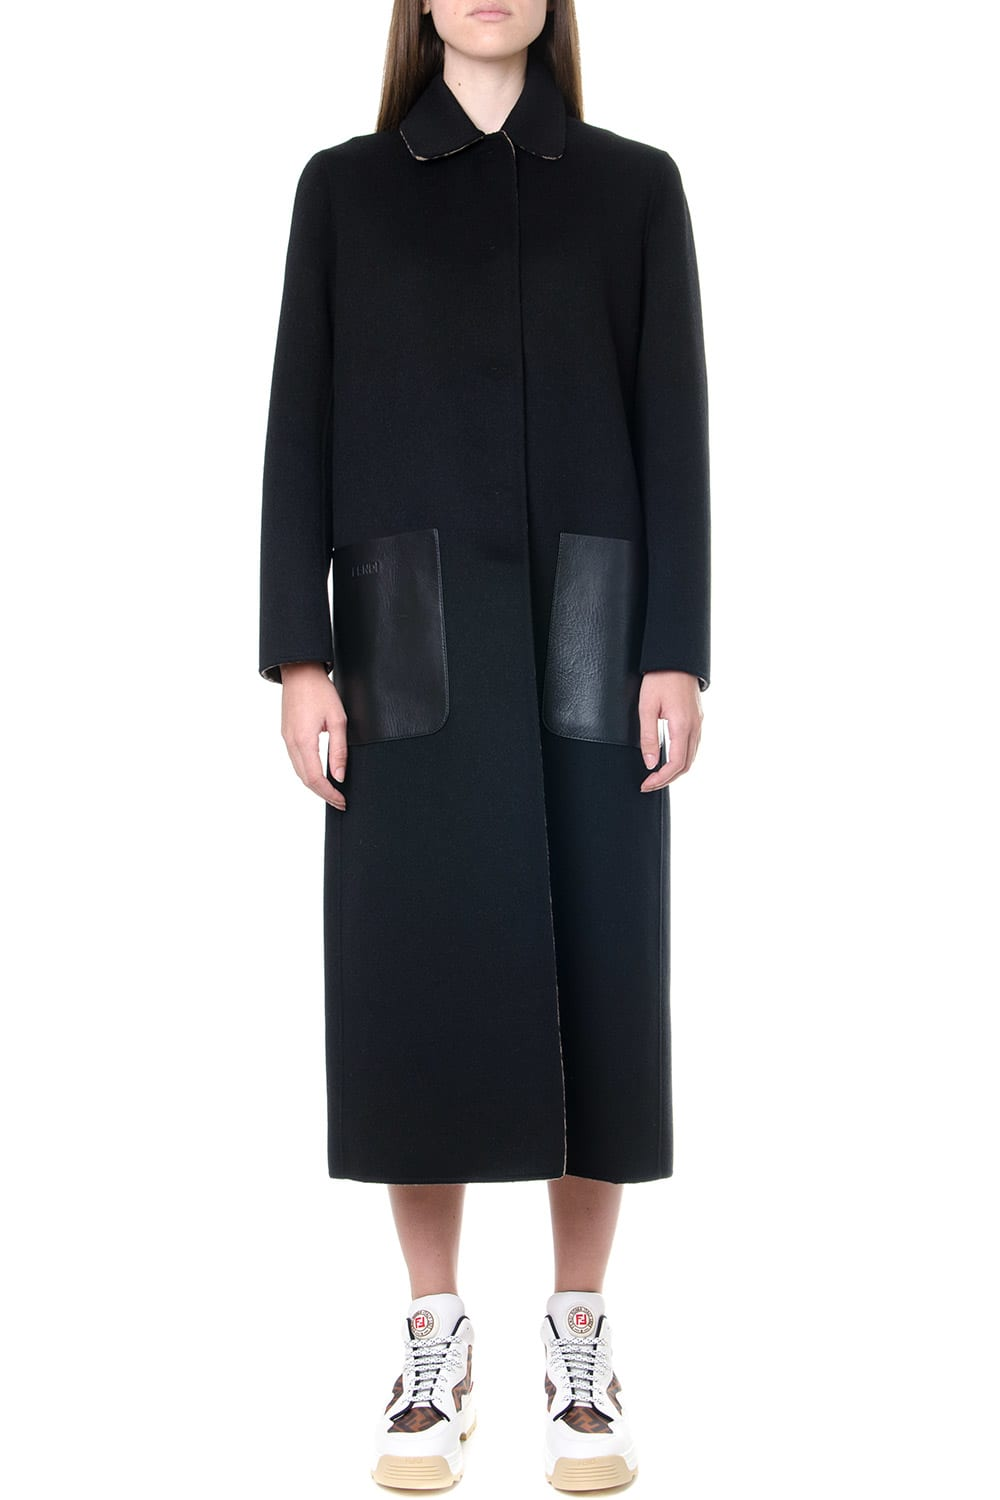 Fendi Black Wool Reversible Coat With Monogram Inner